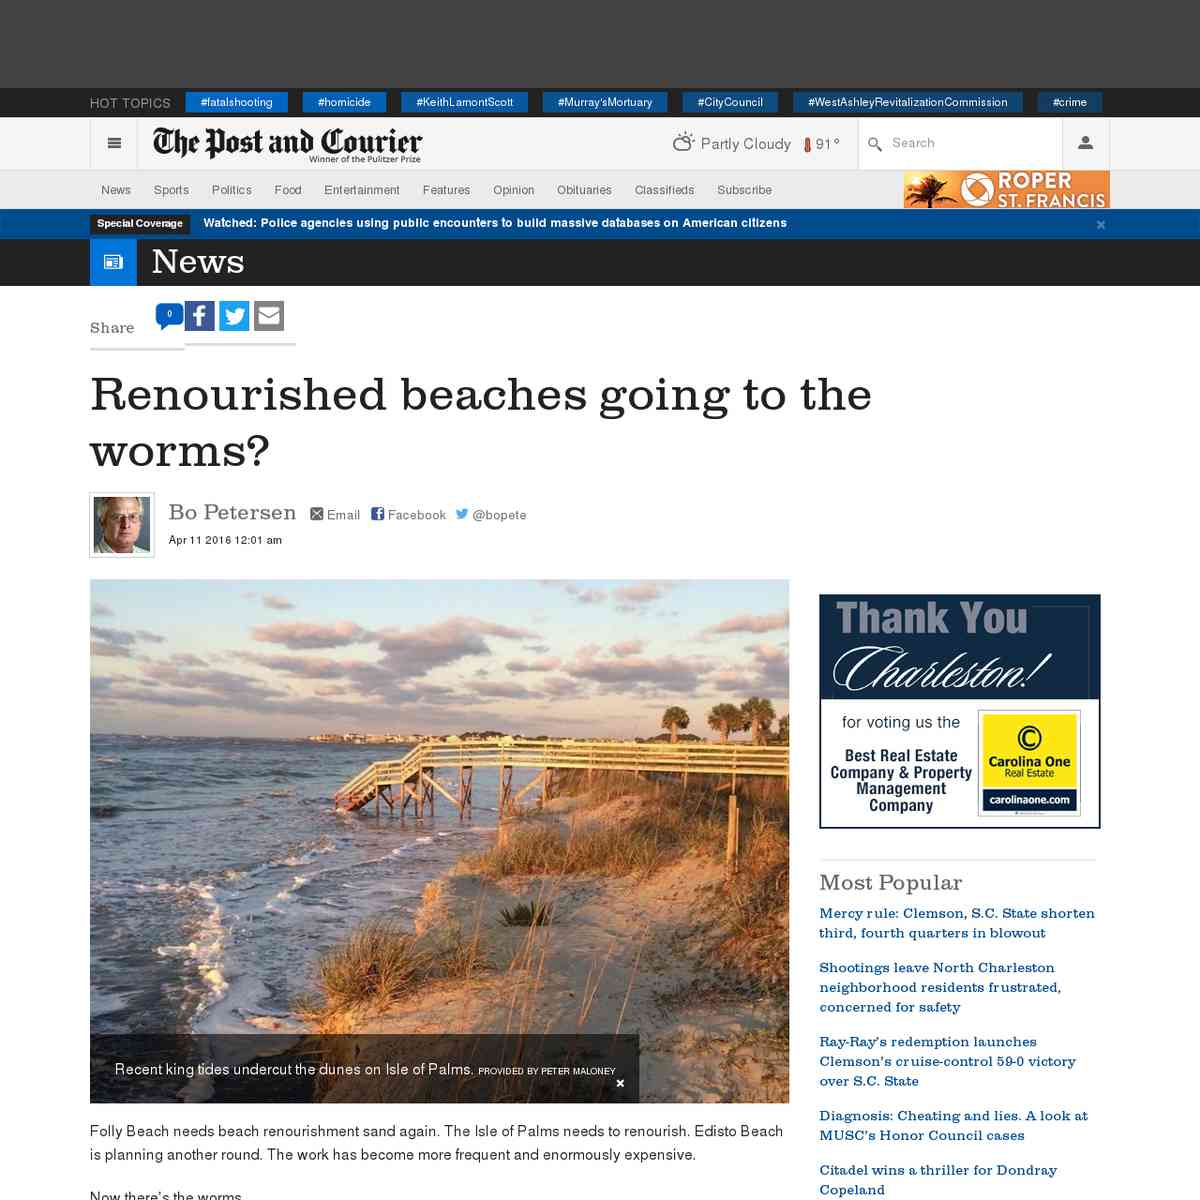 Renourished beaches going to the worms?